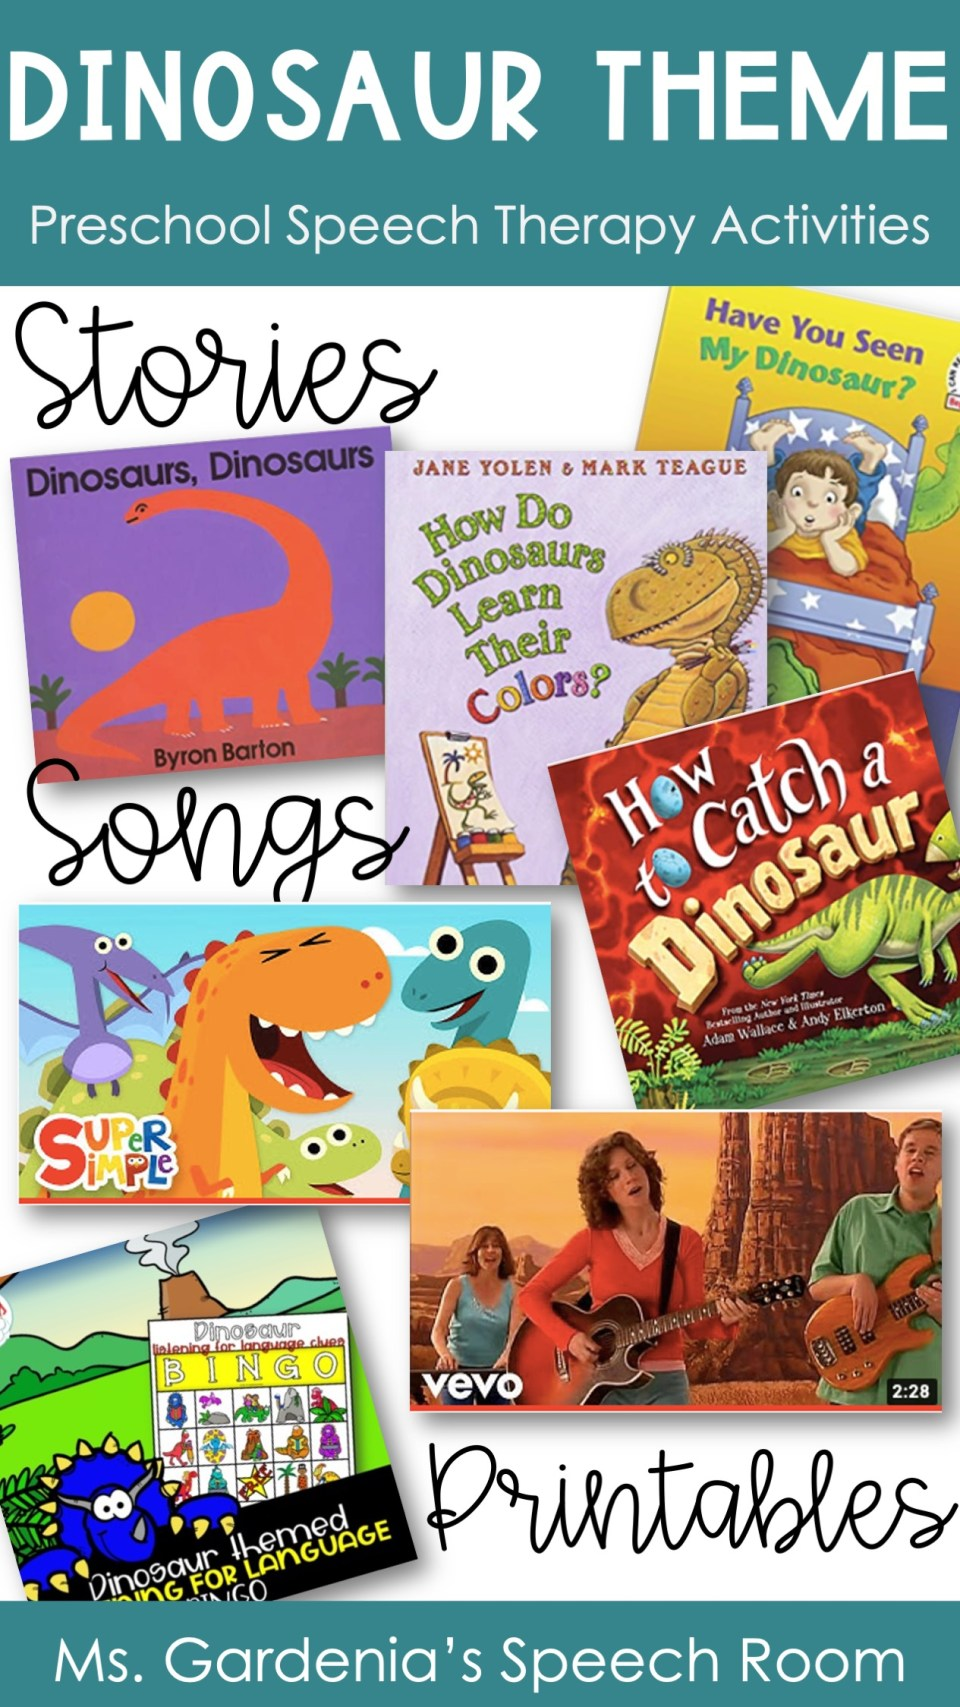 dinosaur theme activities for preschool including dinosaur music activities and dinosaur reading activities